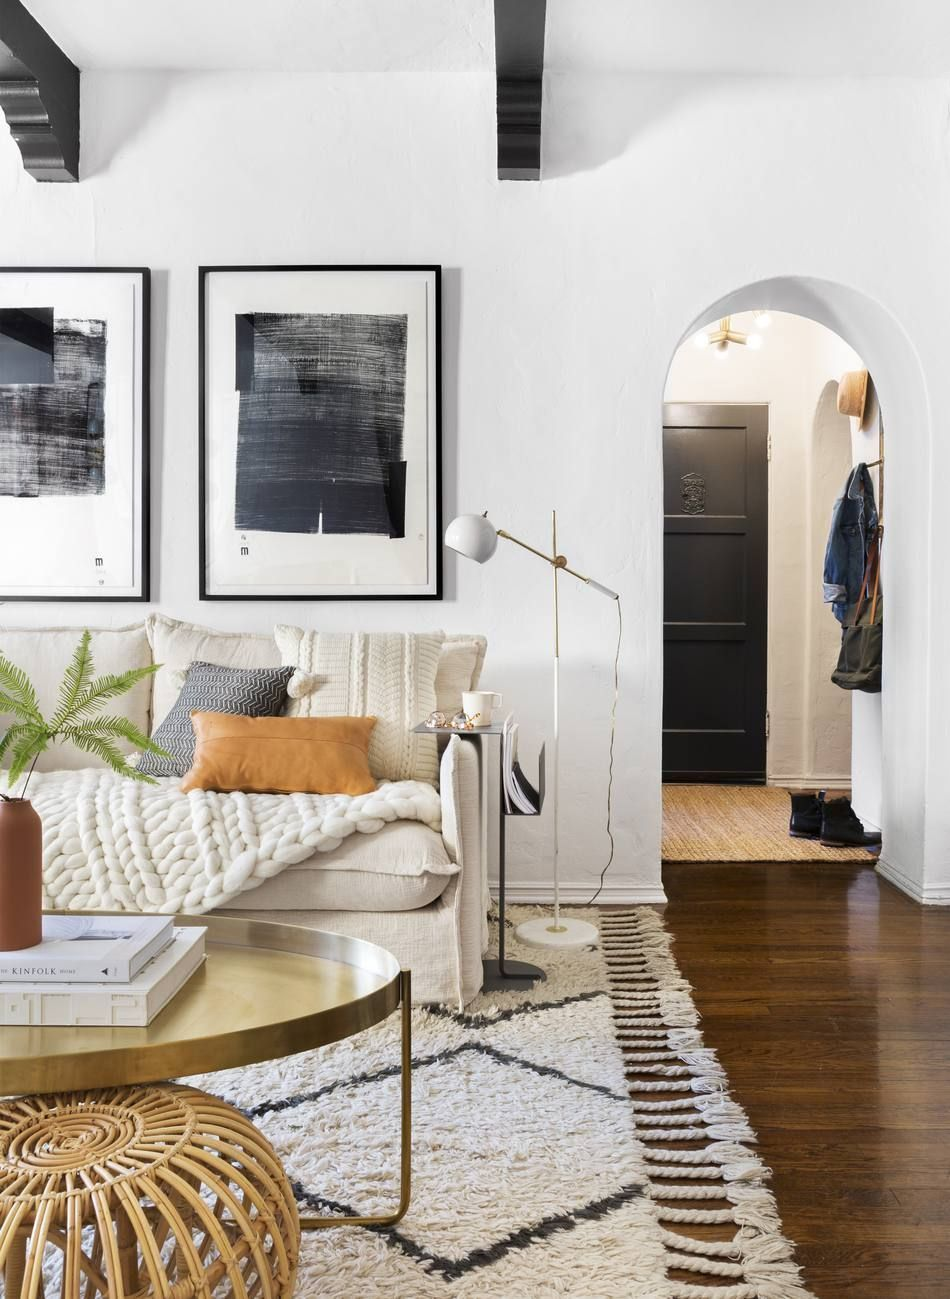 Sorry, These 5 Design Mistakes Are Making Your Living Room Look Cheap -  5 Small Living Room Mistakes That Make Designers Cringe  - #cheap #design #living #LivingRoomDesigns #making #mistakes #ModernHouseDesign #ModernInteriorDesign #Room #sorry #these